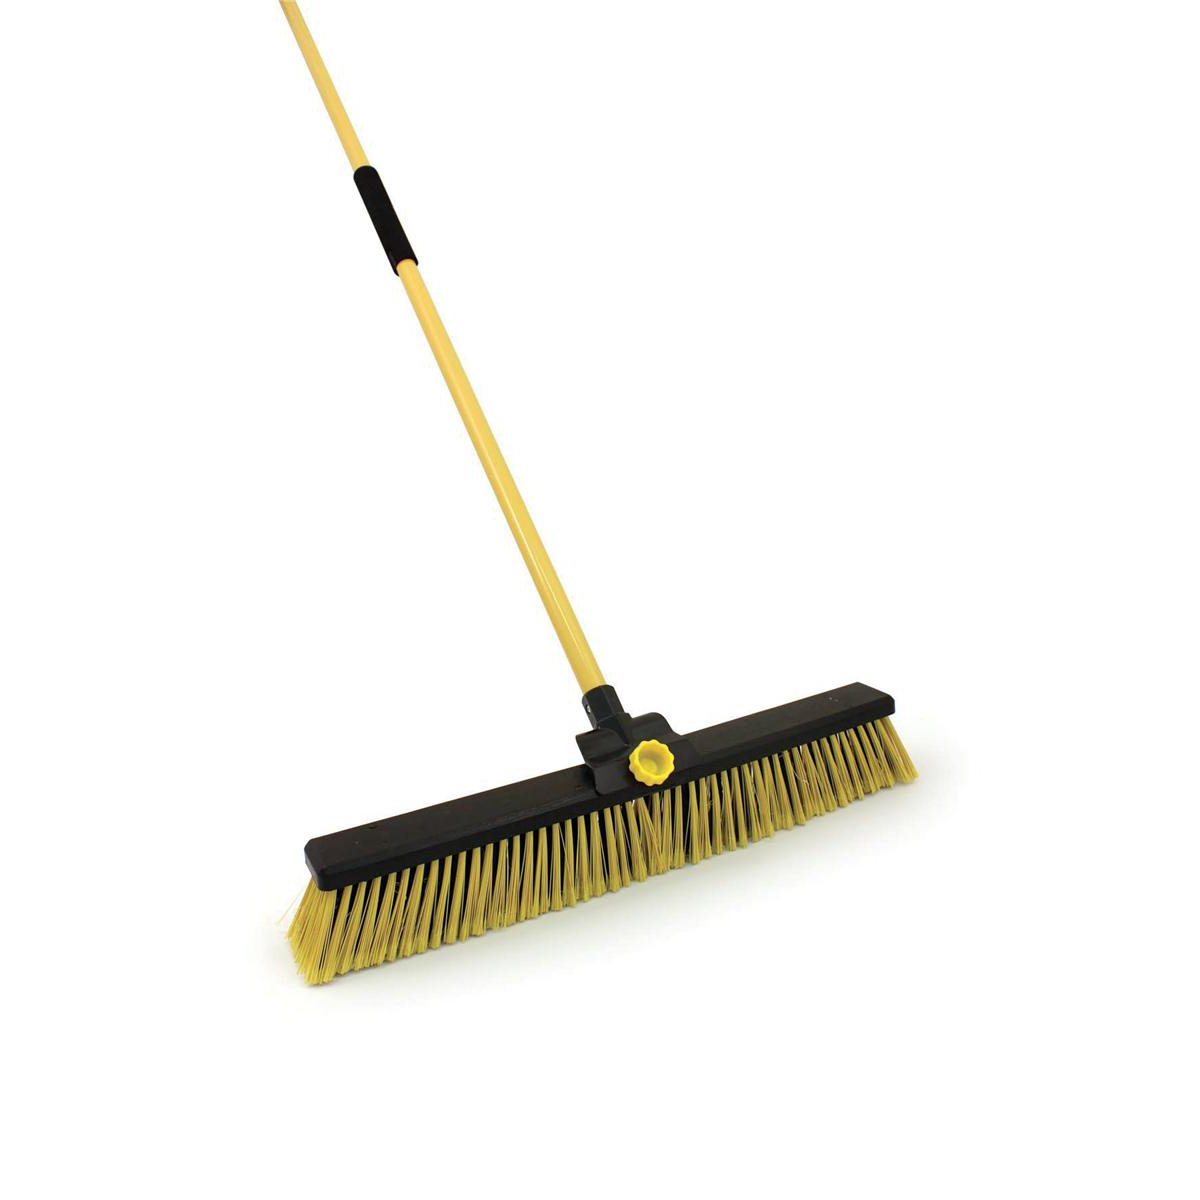 Brooms Bentley Broom Bulldozer Dual Purpose Soft/Stiff PVC Yard Broom & Metal Handle 24inch Ref SPC/HQ16